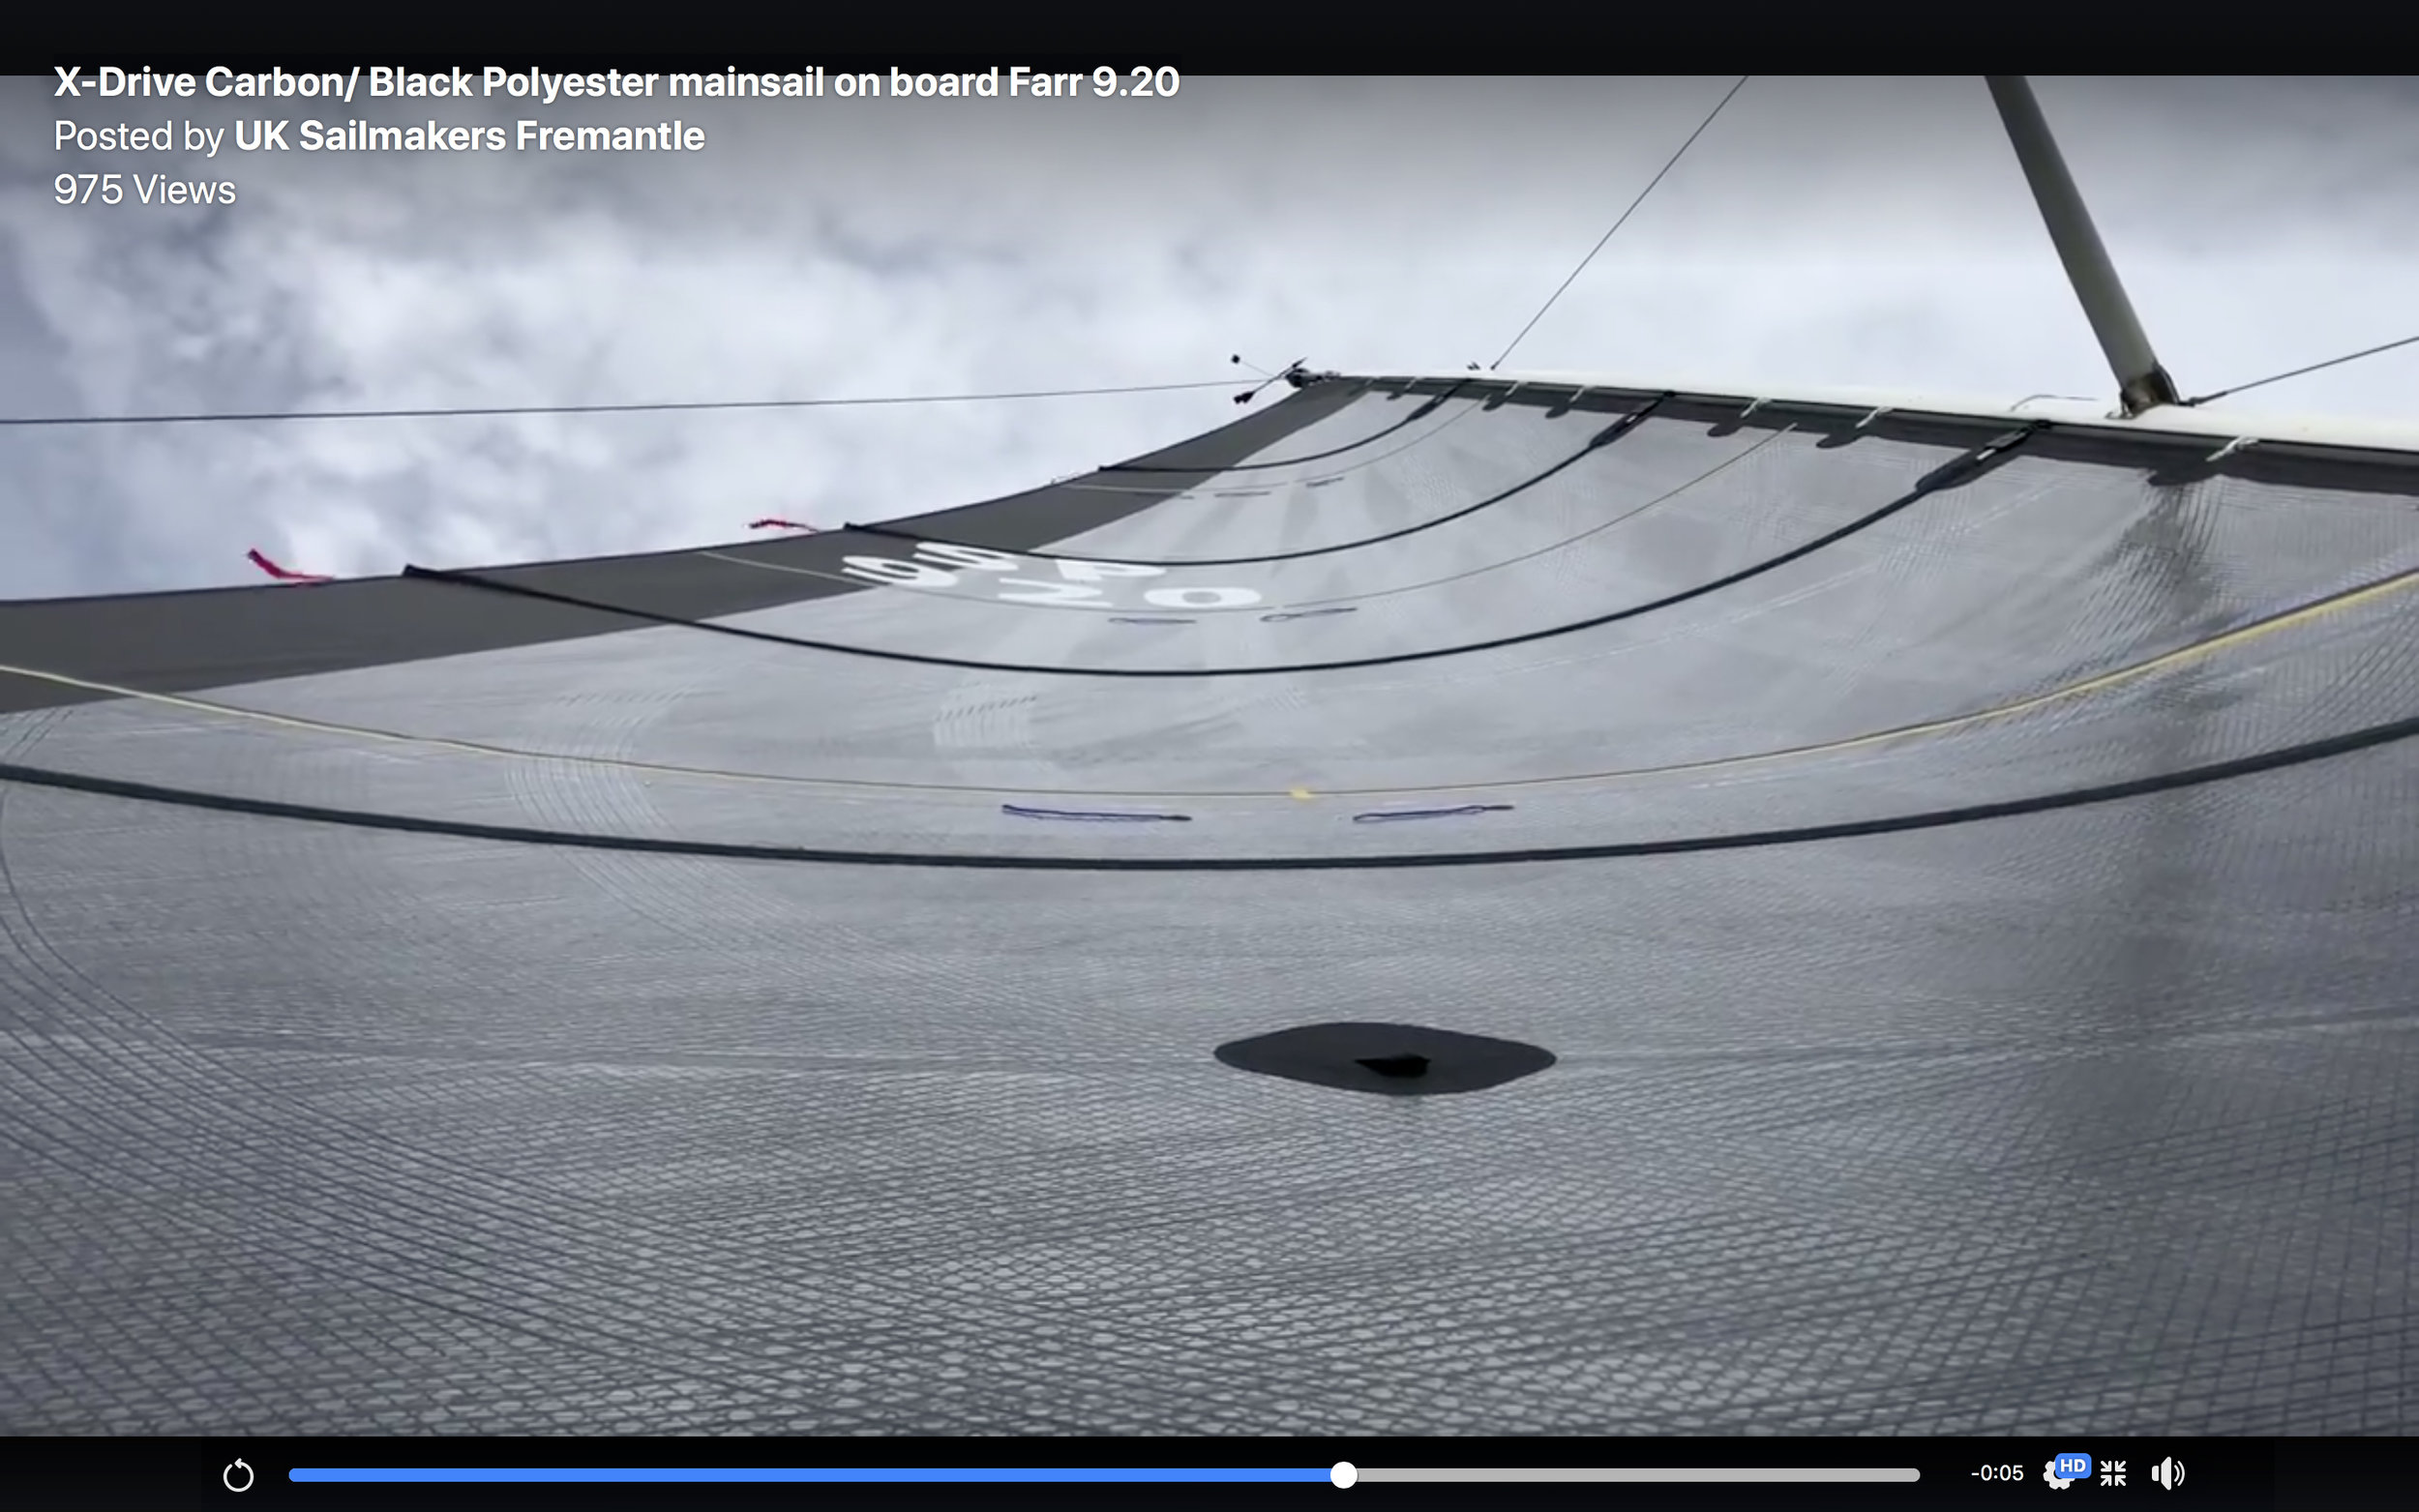 Here is a video of an X-Drive Carbon main. The X-Drive tapes are on a black polyester laminate.